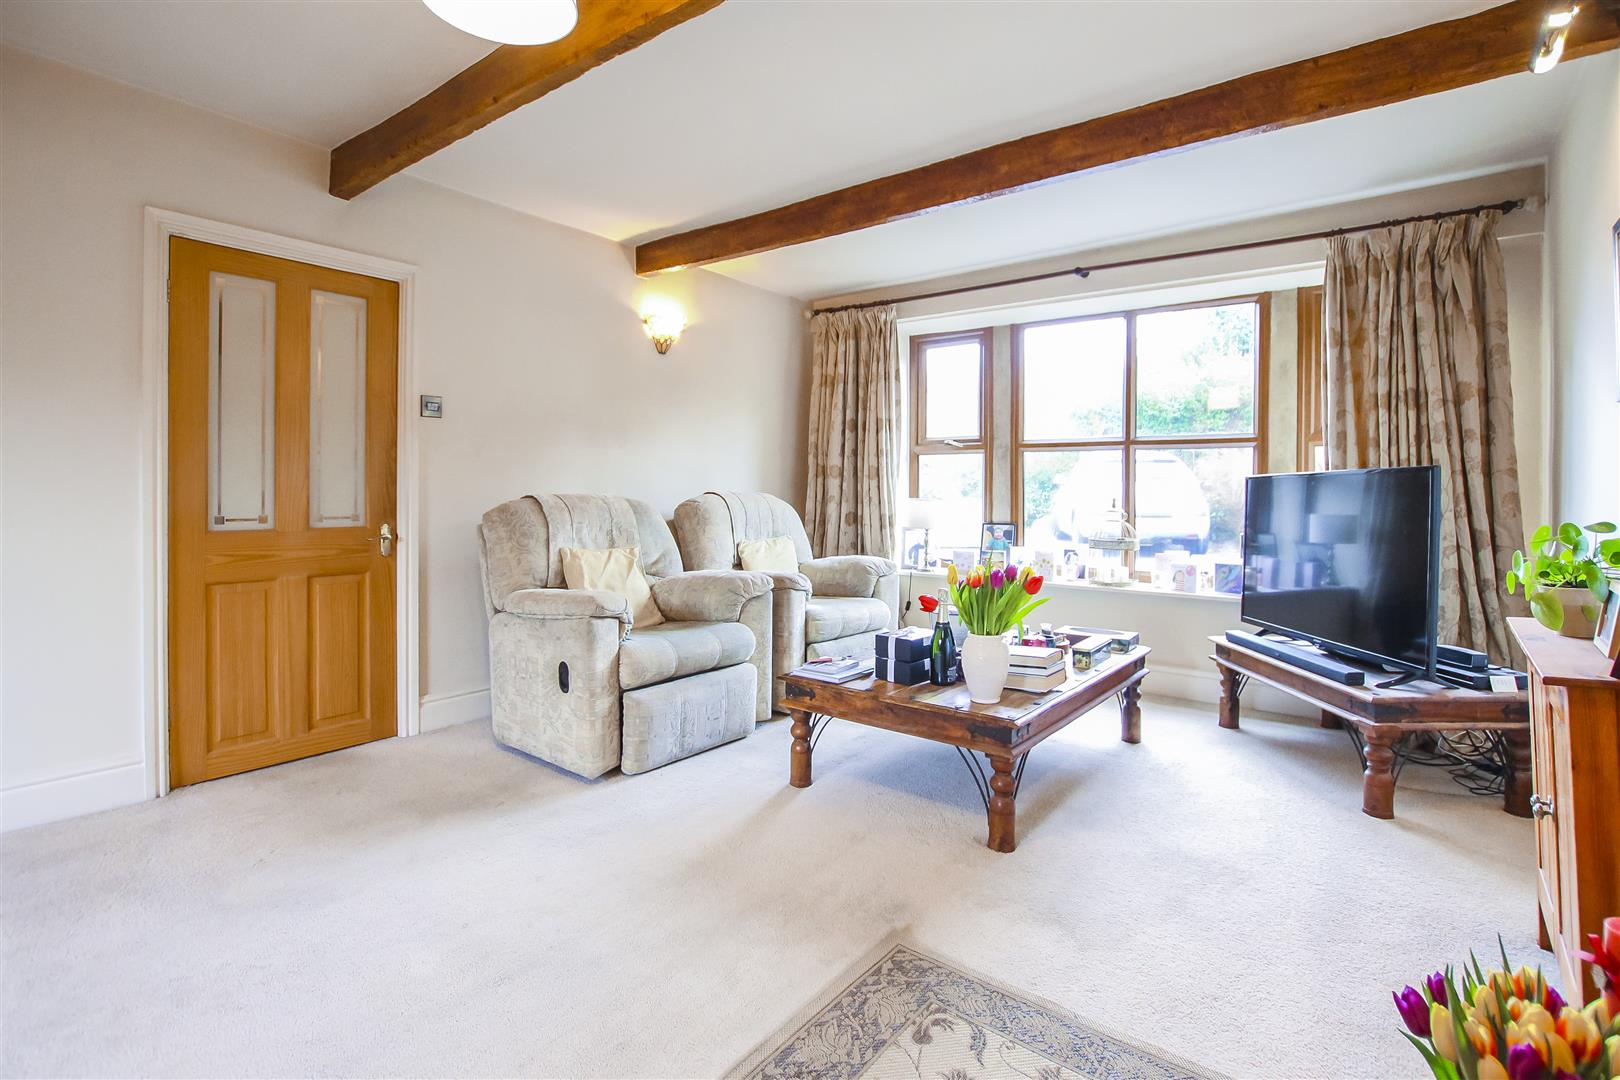 4 Bedroom Farmhouse For Sale - Image 25